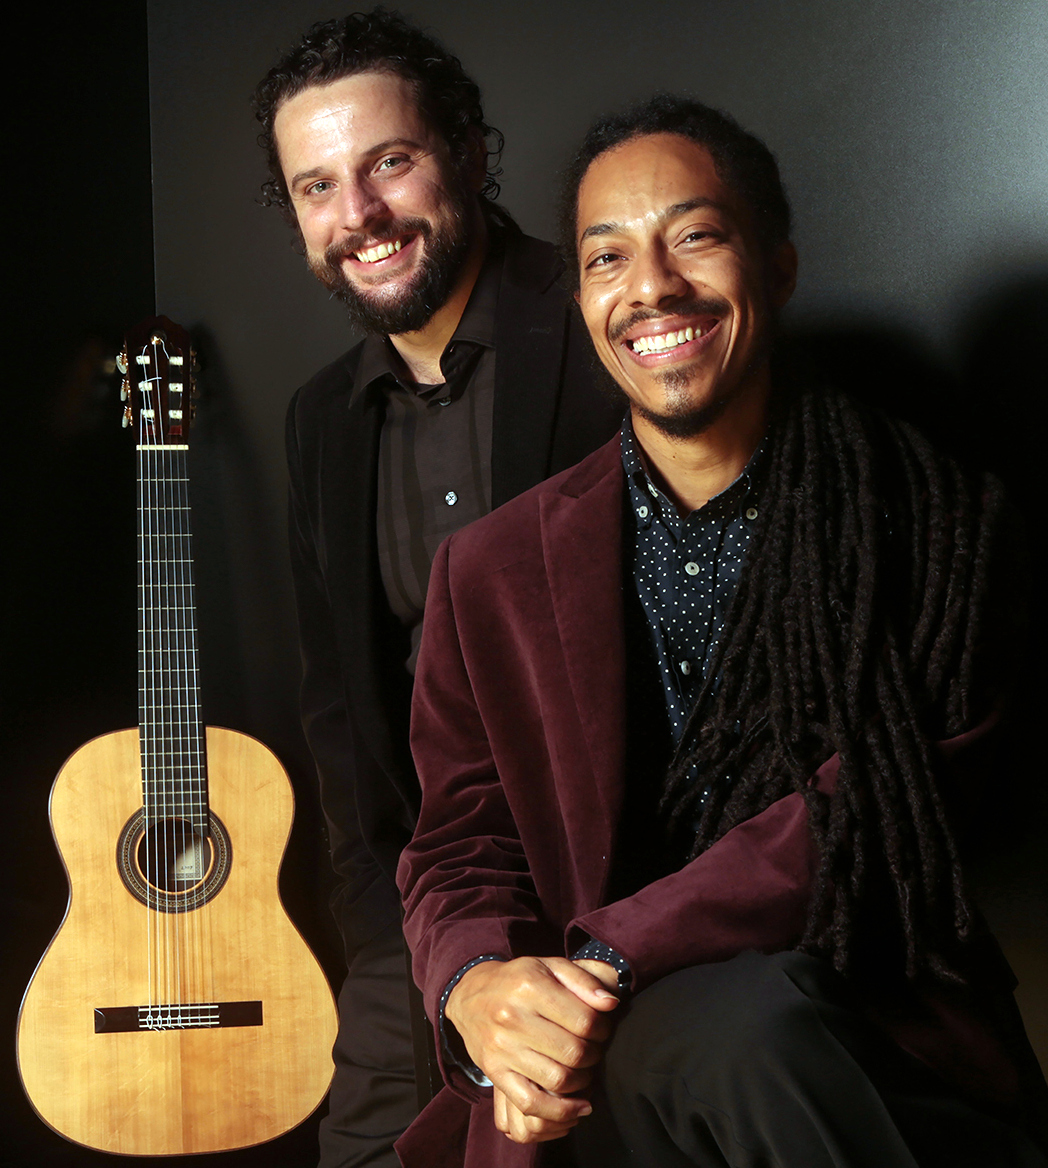 Caption: Brasil Guitar Duo, Credit: Concert Artists Guild